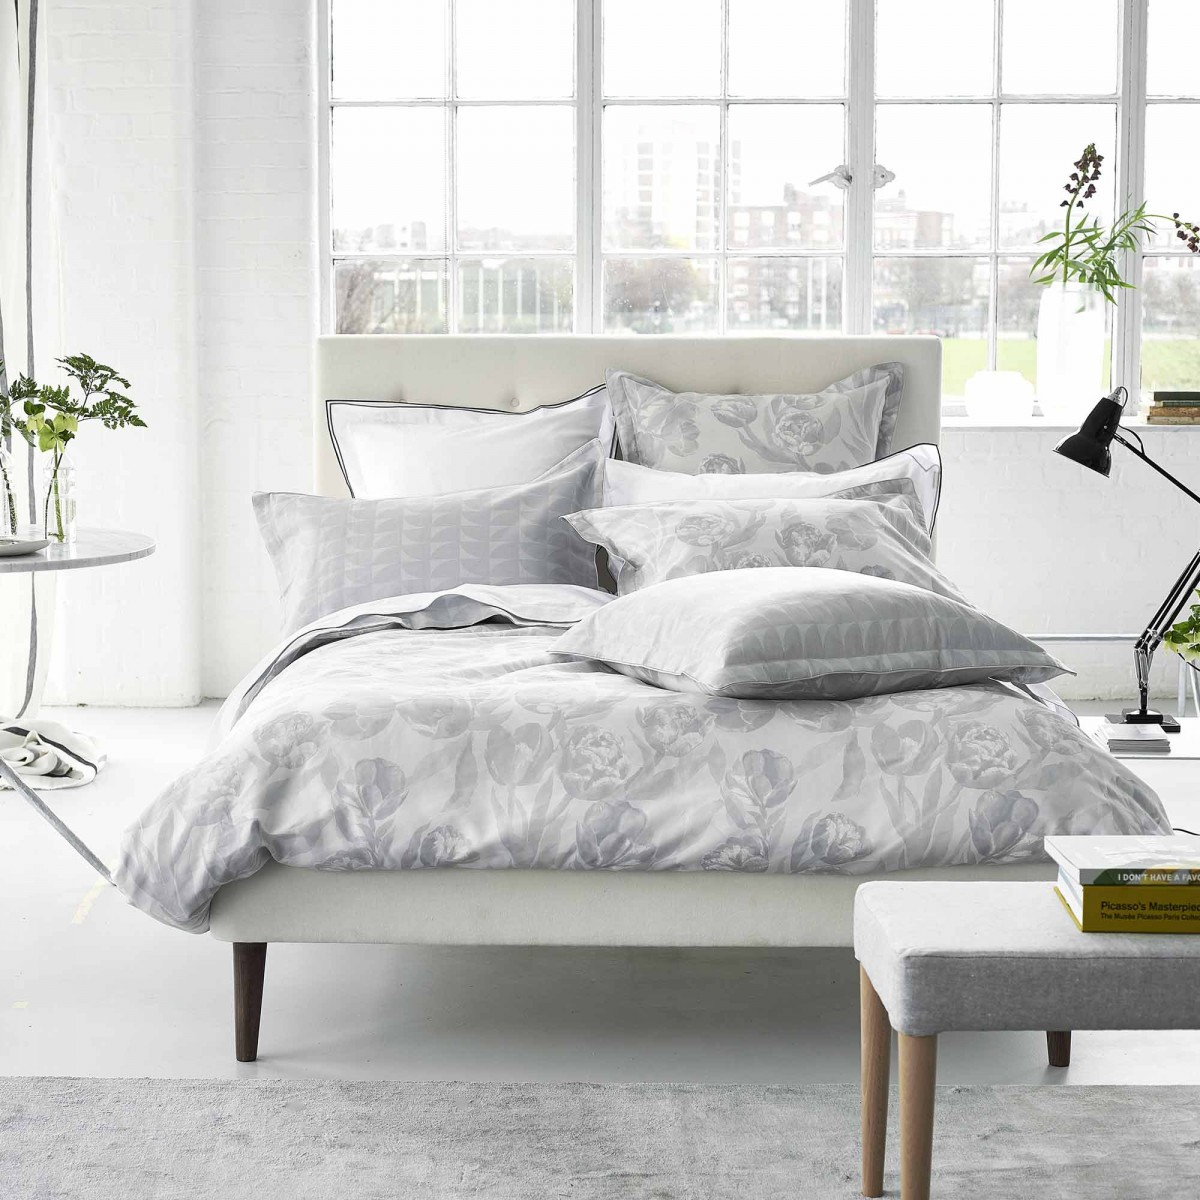 Designers Guild beddengoed Fontainebleau